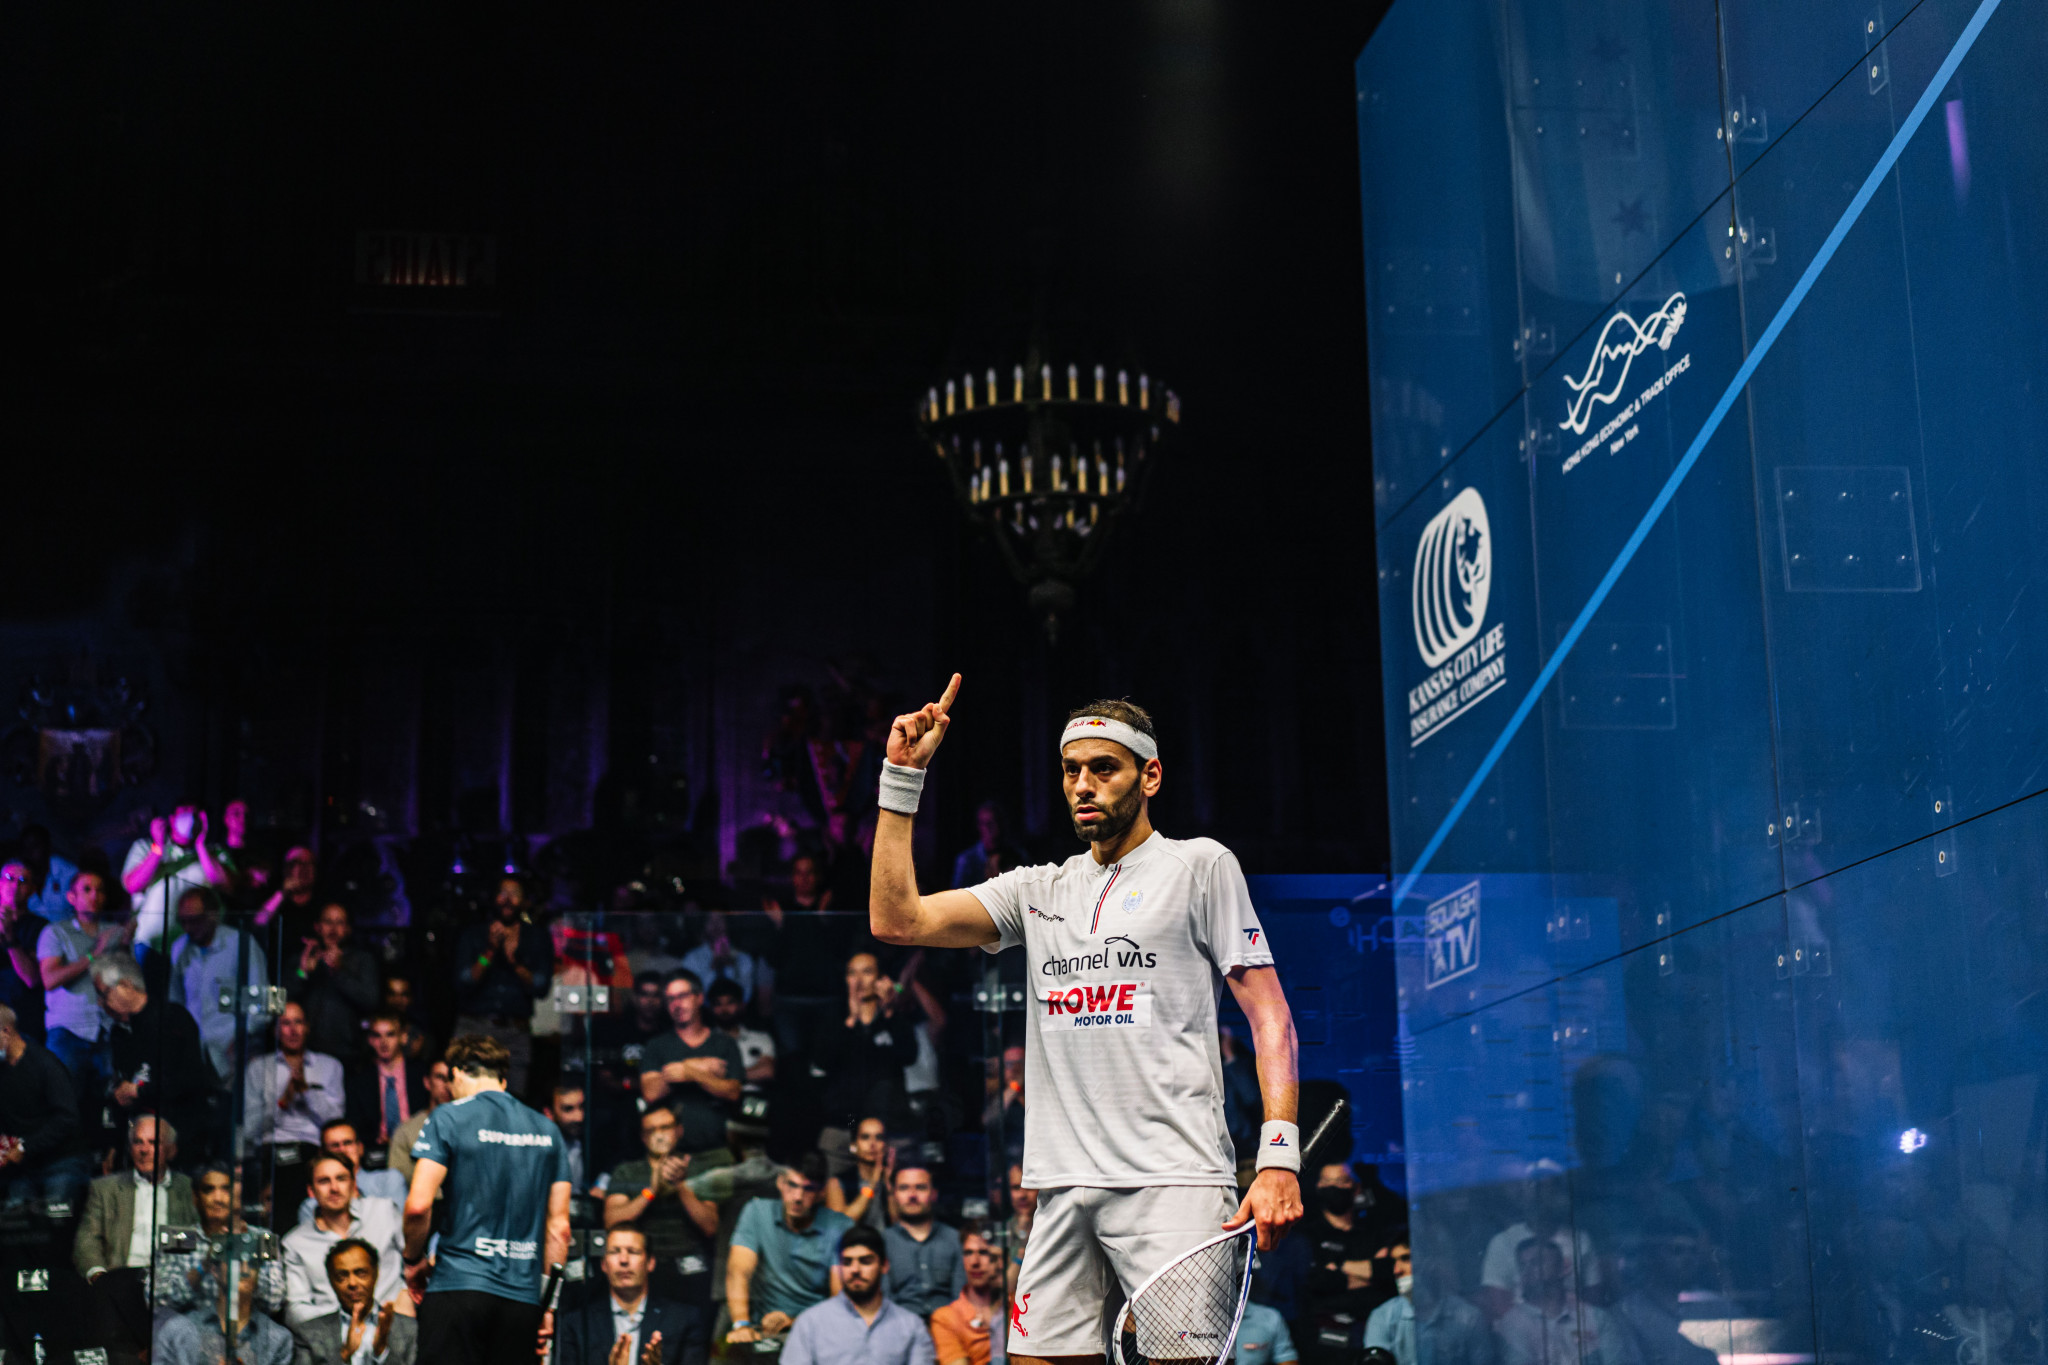 Mohamed ElShorbagy will become world number one regardless of the result of the final ©PSA